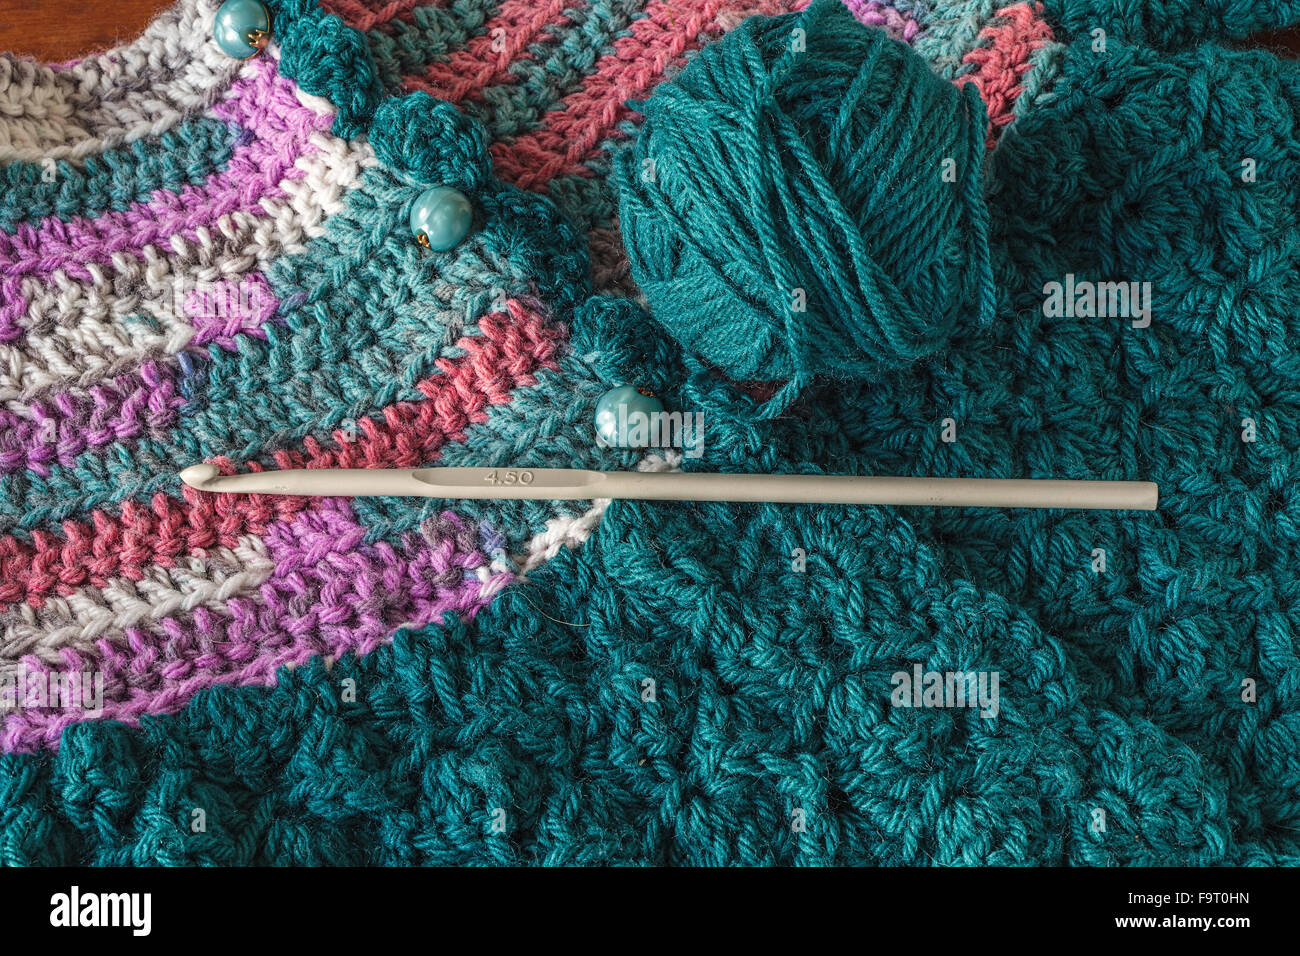 Crocheted baby sweater with a crochet hook and ball of yarn. - Stock Image